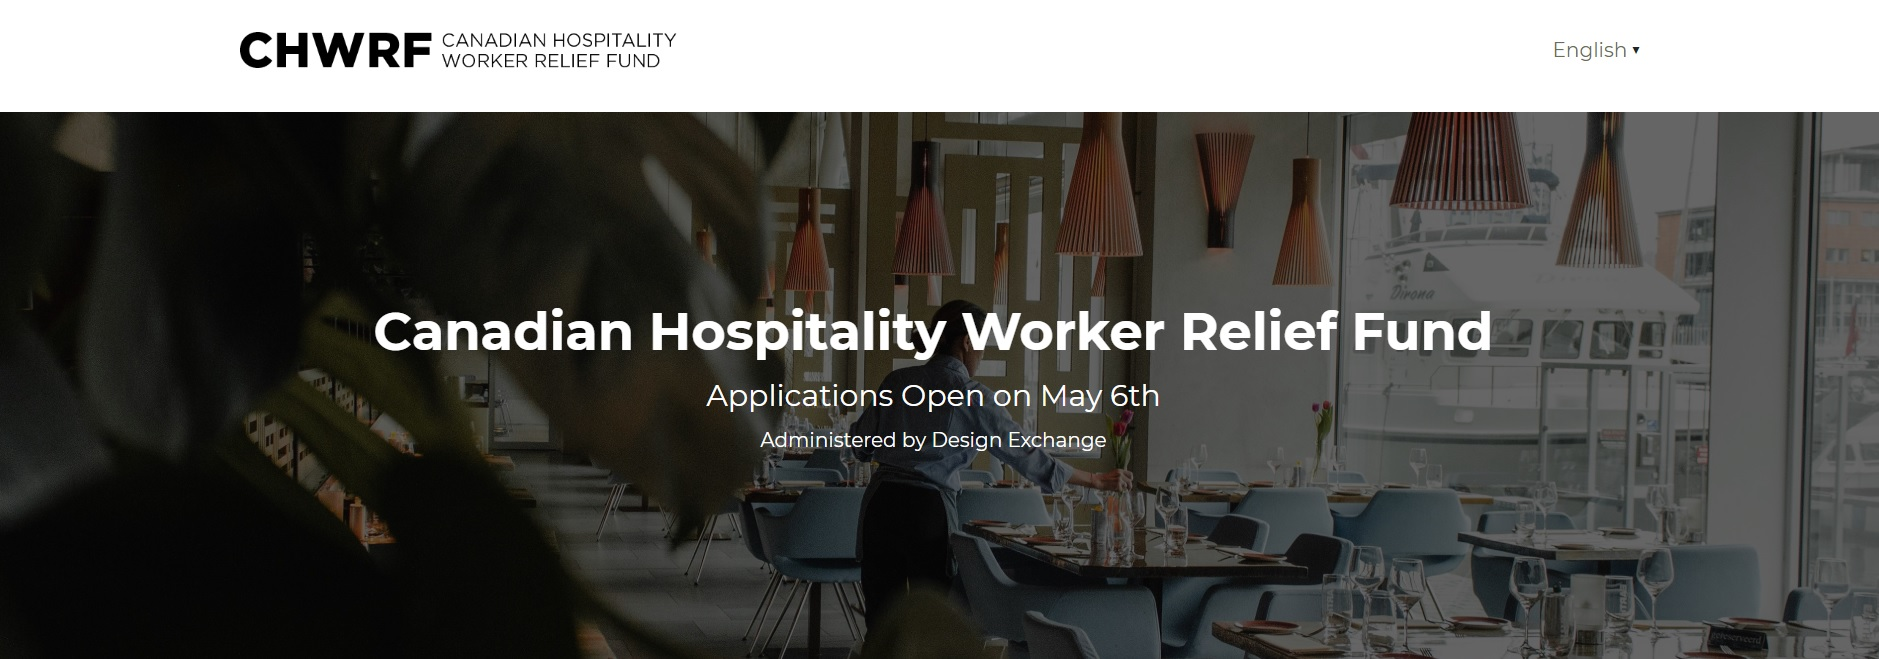 Is CHWRF Grant a Scam? Review of the Canadian Hospitality Worker Relief Fund